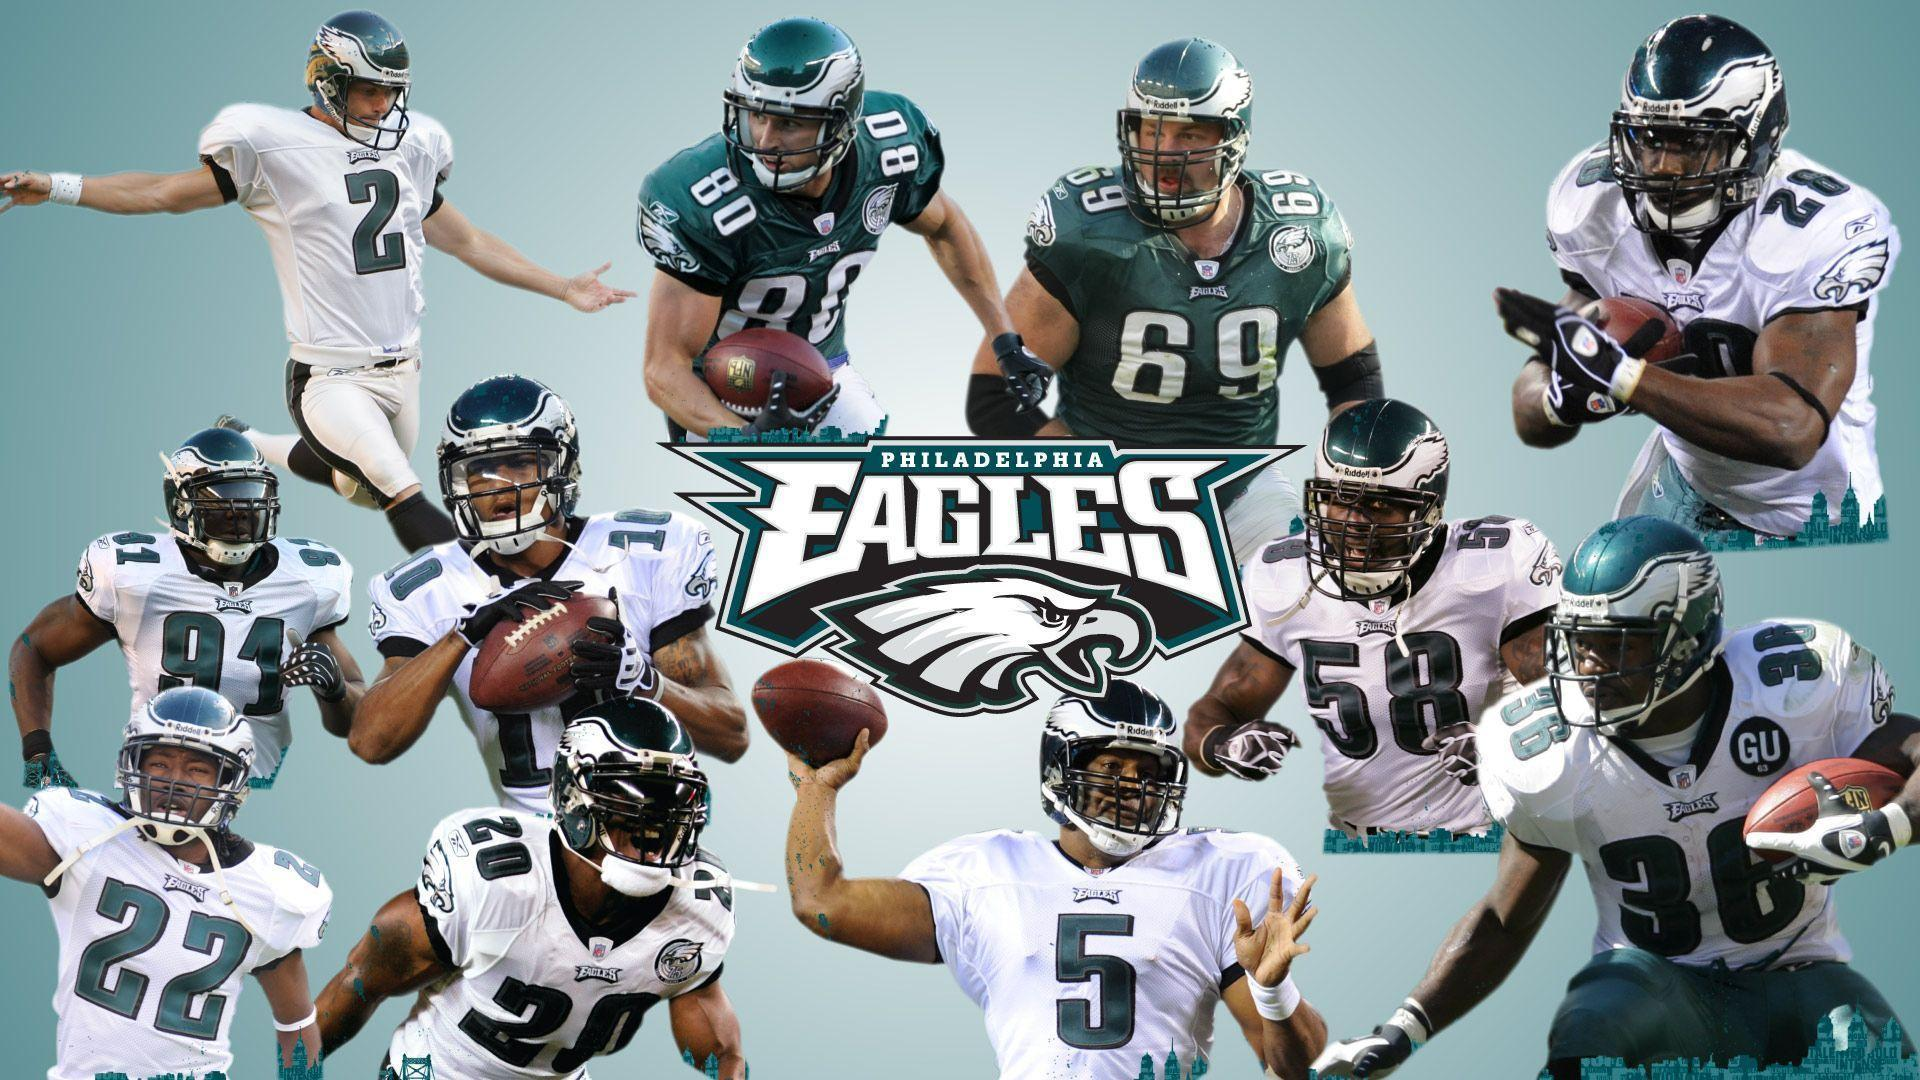 Philadelphia Eagles Wallpaper 1920×1080 - High Definition ...